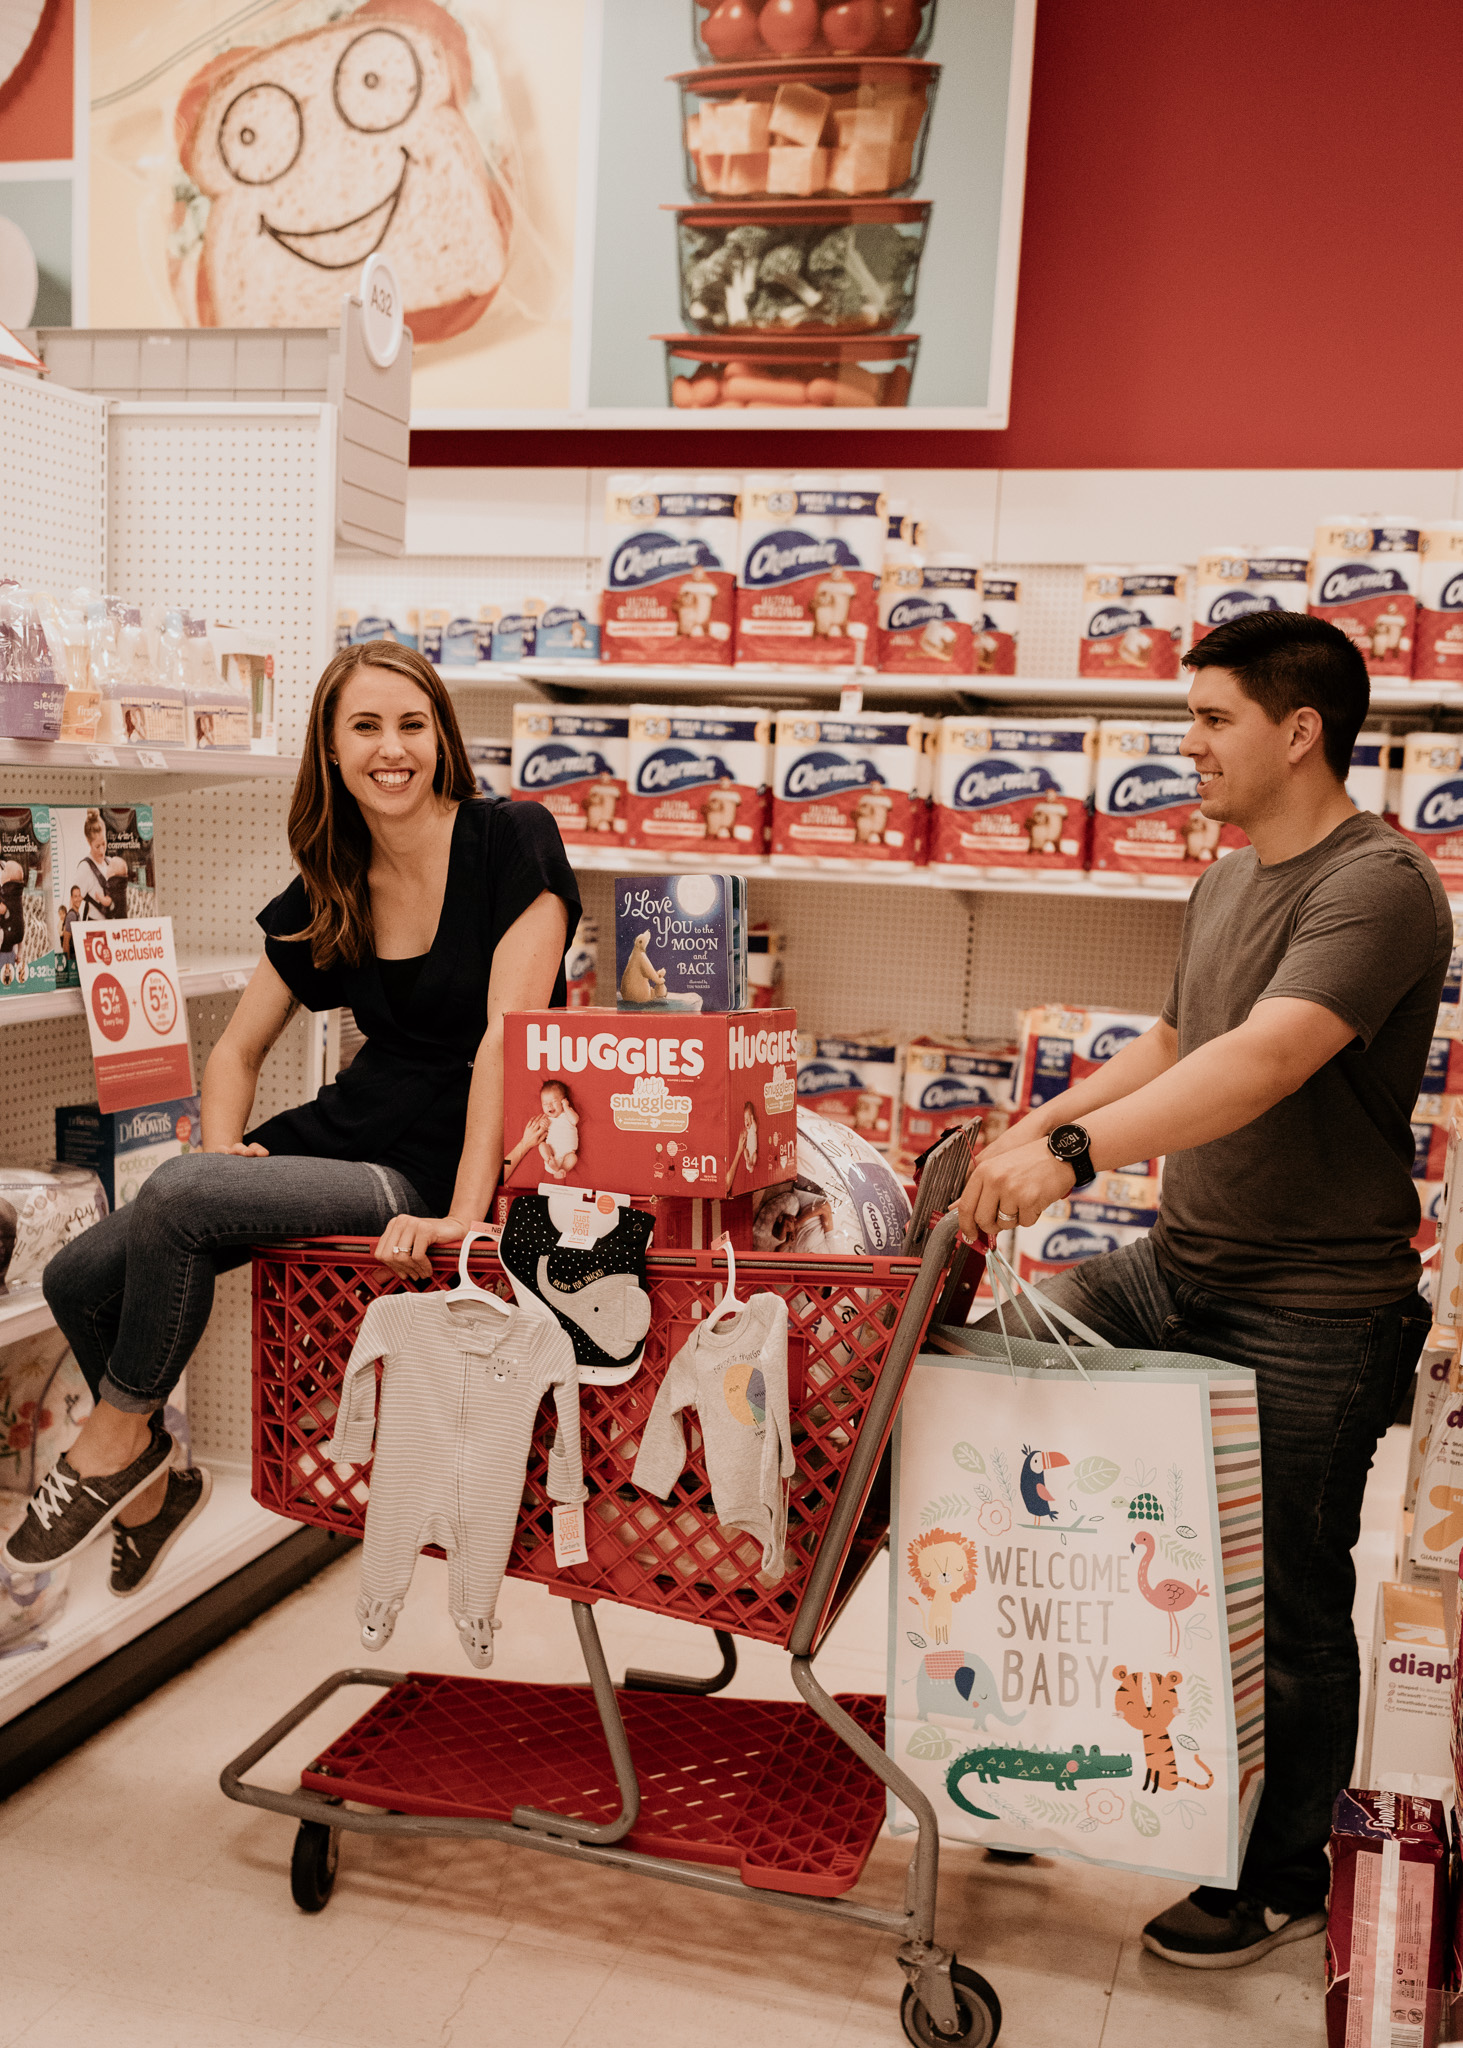 Soon to Be Parents Shopping for Baby